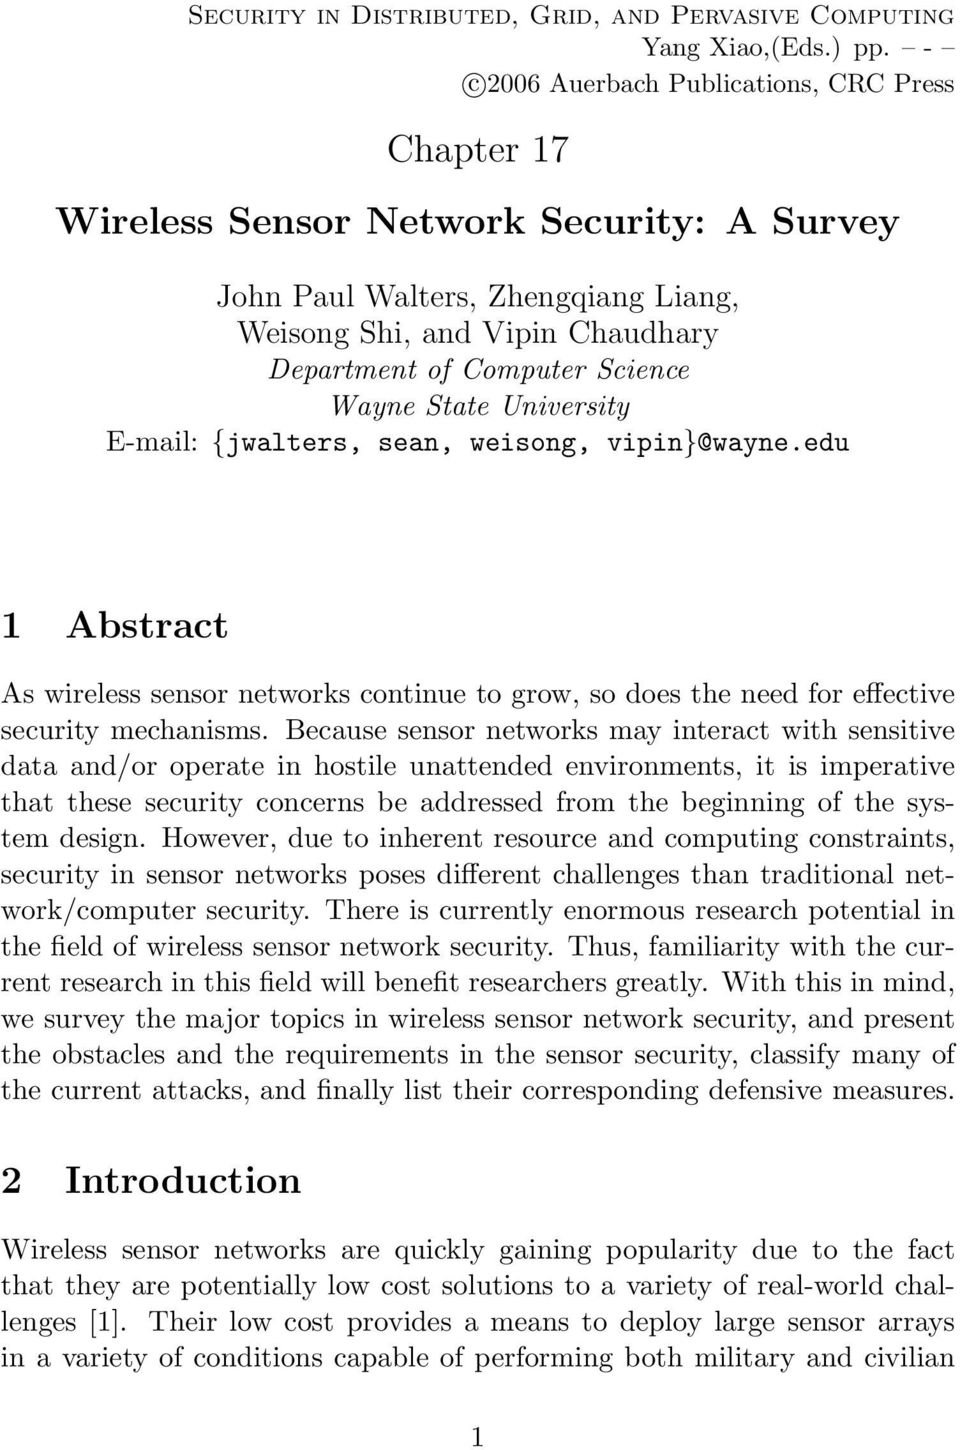 Wayne State University E-mail: {jwalters, sean, weisong, vipin}@wayne.edu 1 Abstract As wireless sensor networks continue to grow, so does the need for effective security mechanisms.